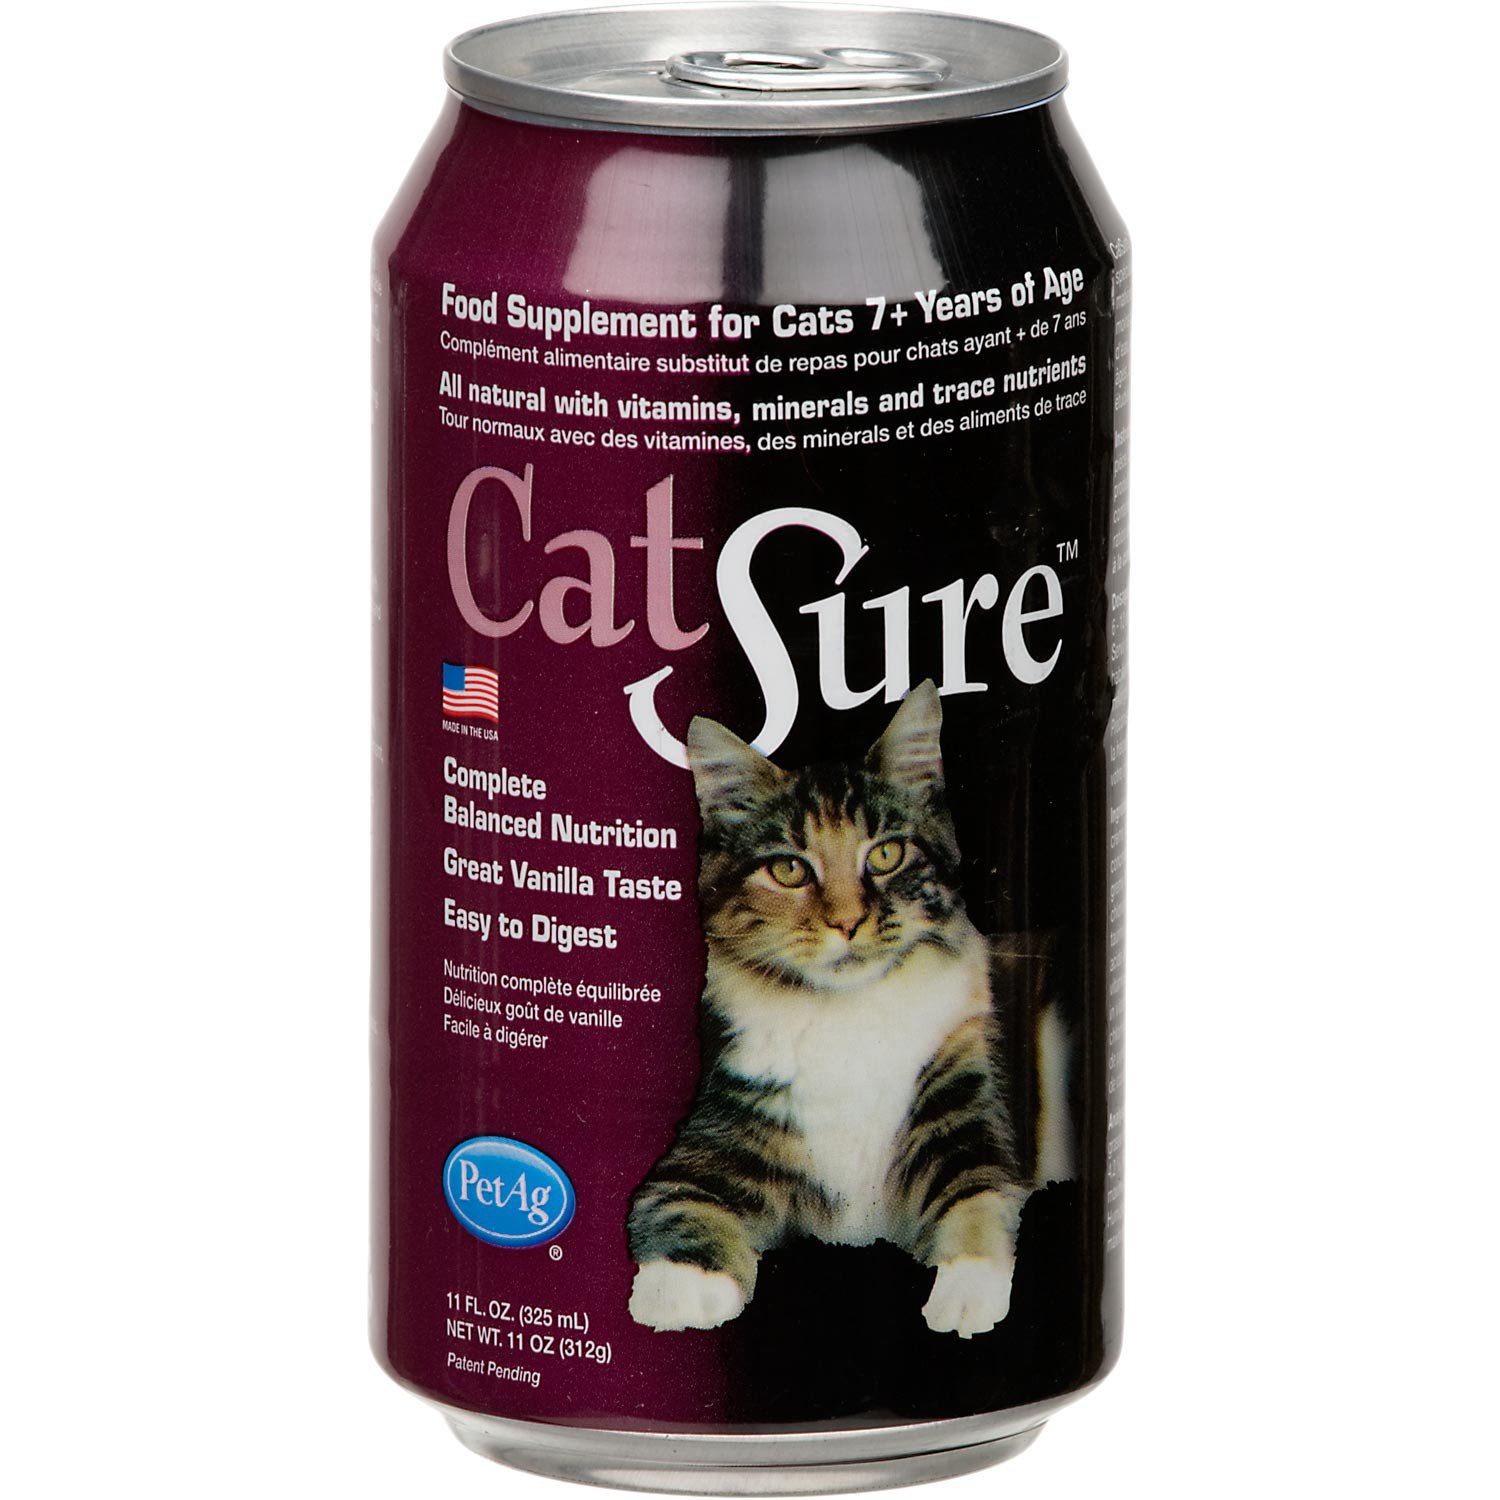 PetAg CatSure Meal Replacement